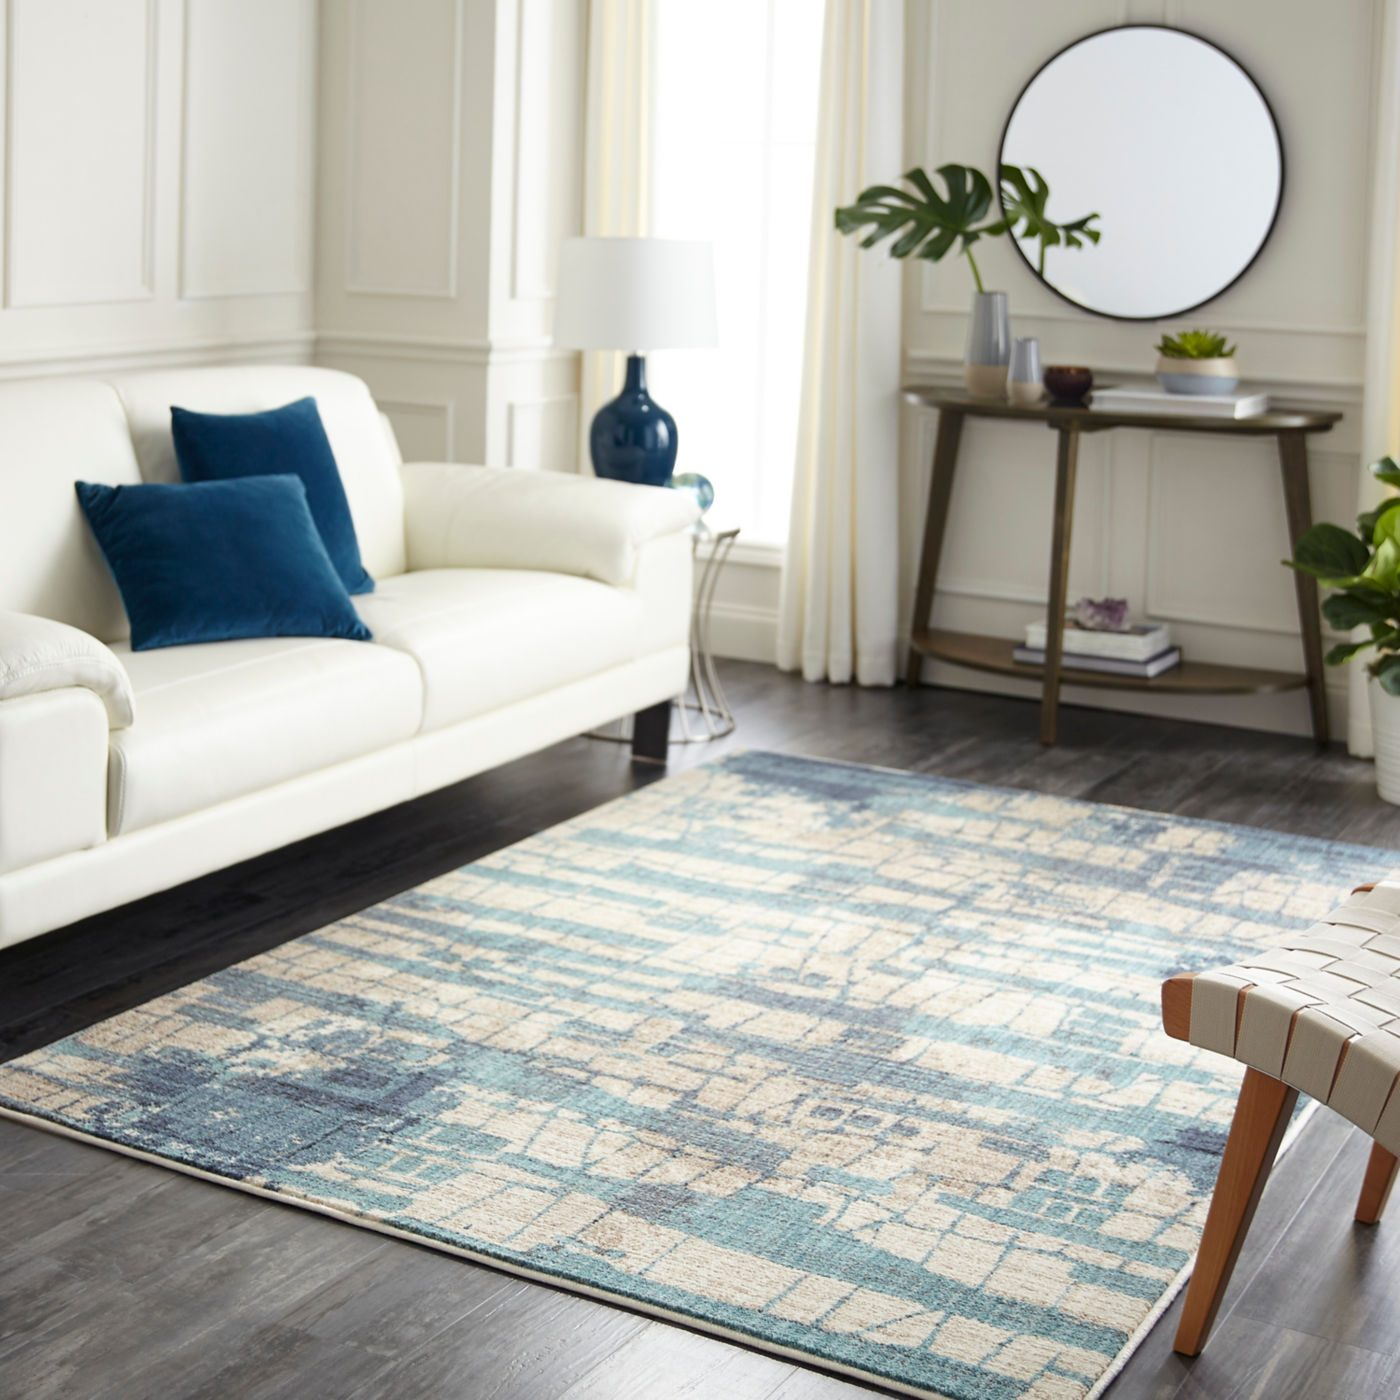 Quality Area Rugs for Living Room | Leicester Flooring